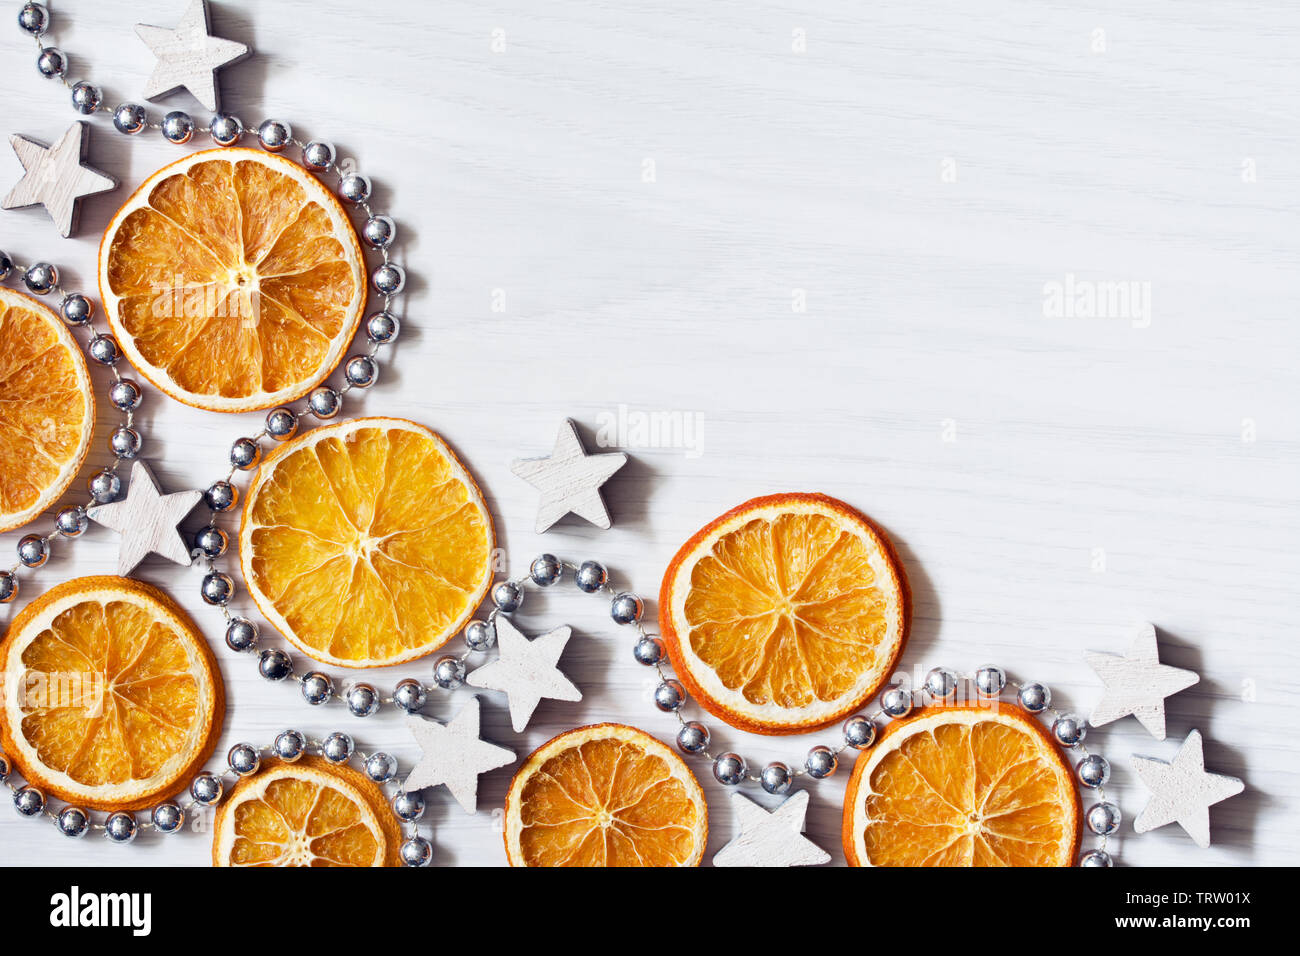 Christmas composition with dried oranges, white stars and silver bead chain - white background with deep shadows - close-up, text space - Stock Image